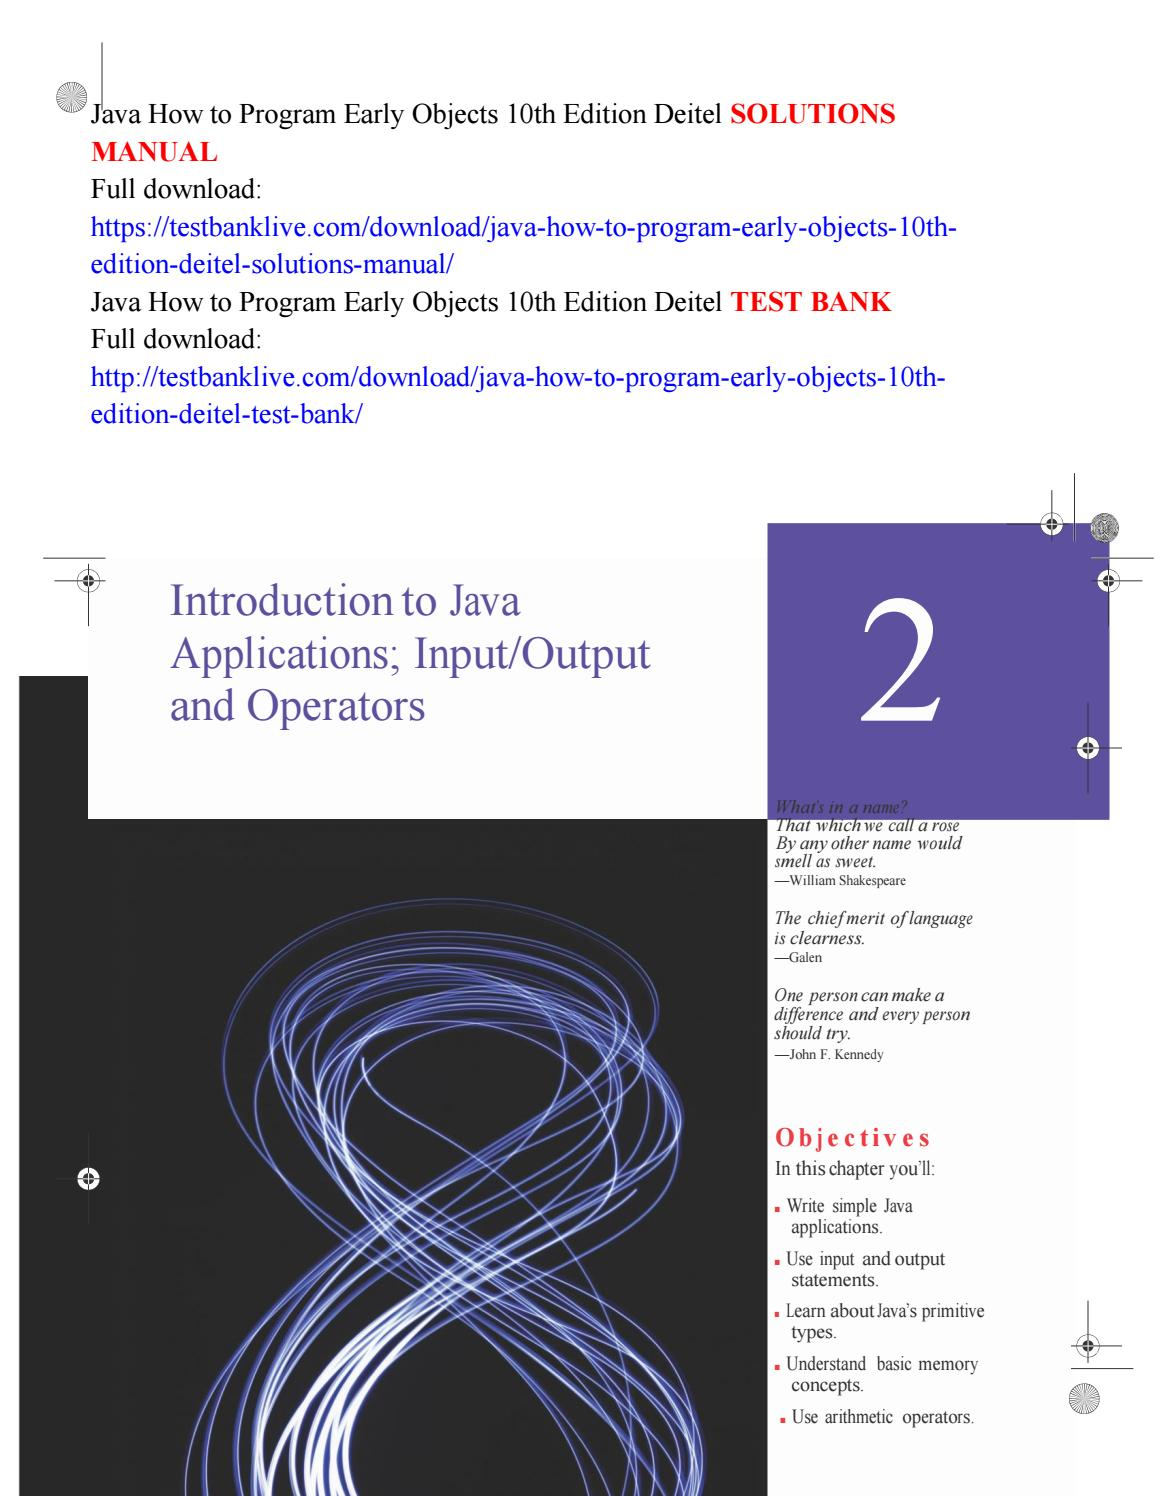 Java how to program early objects 10th edition deitel solutions manual by  angela5546 - issuu